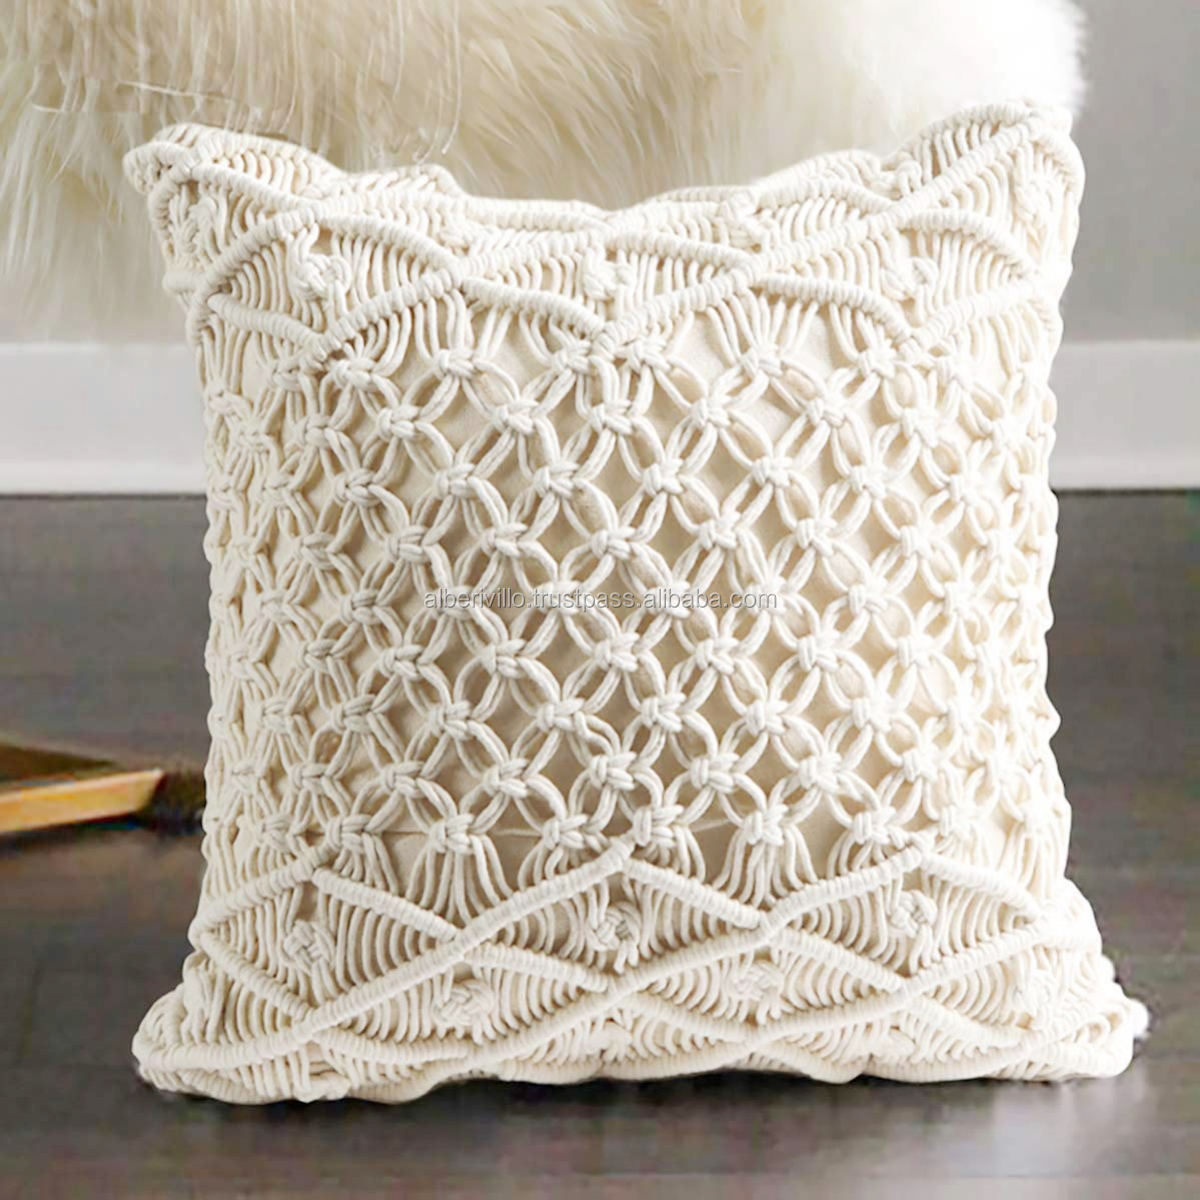 Cotton Rope Macrame Cushion Covers Handmade Macrame Home Couch Floor Cushion